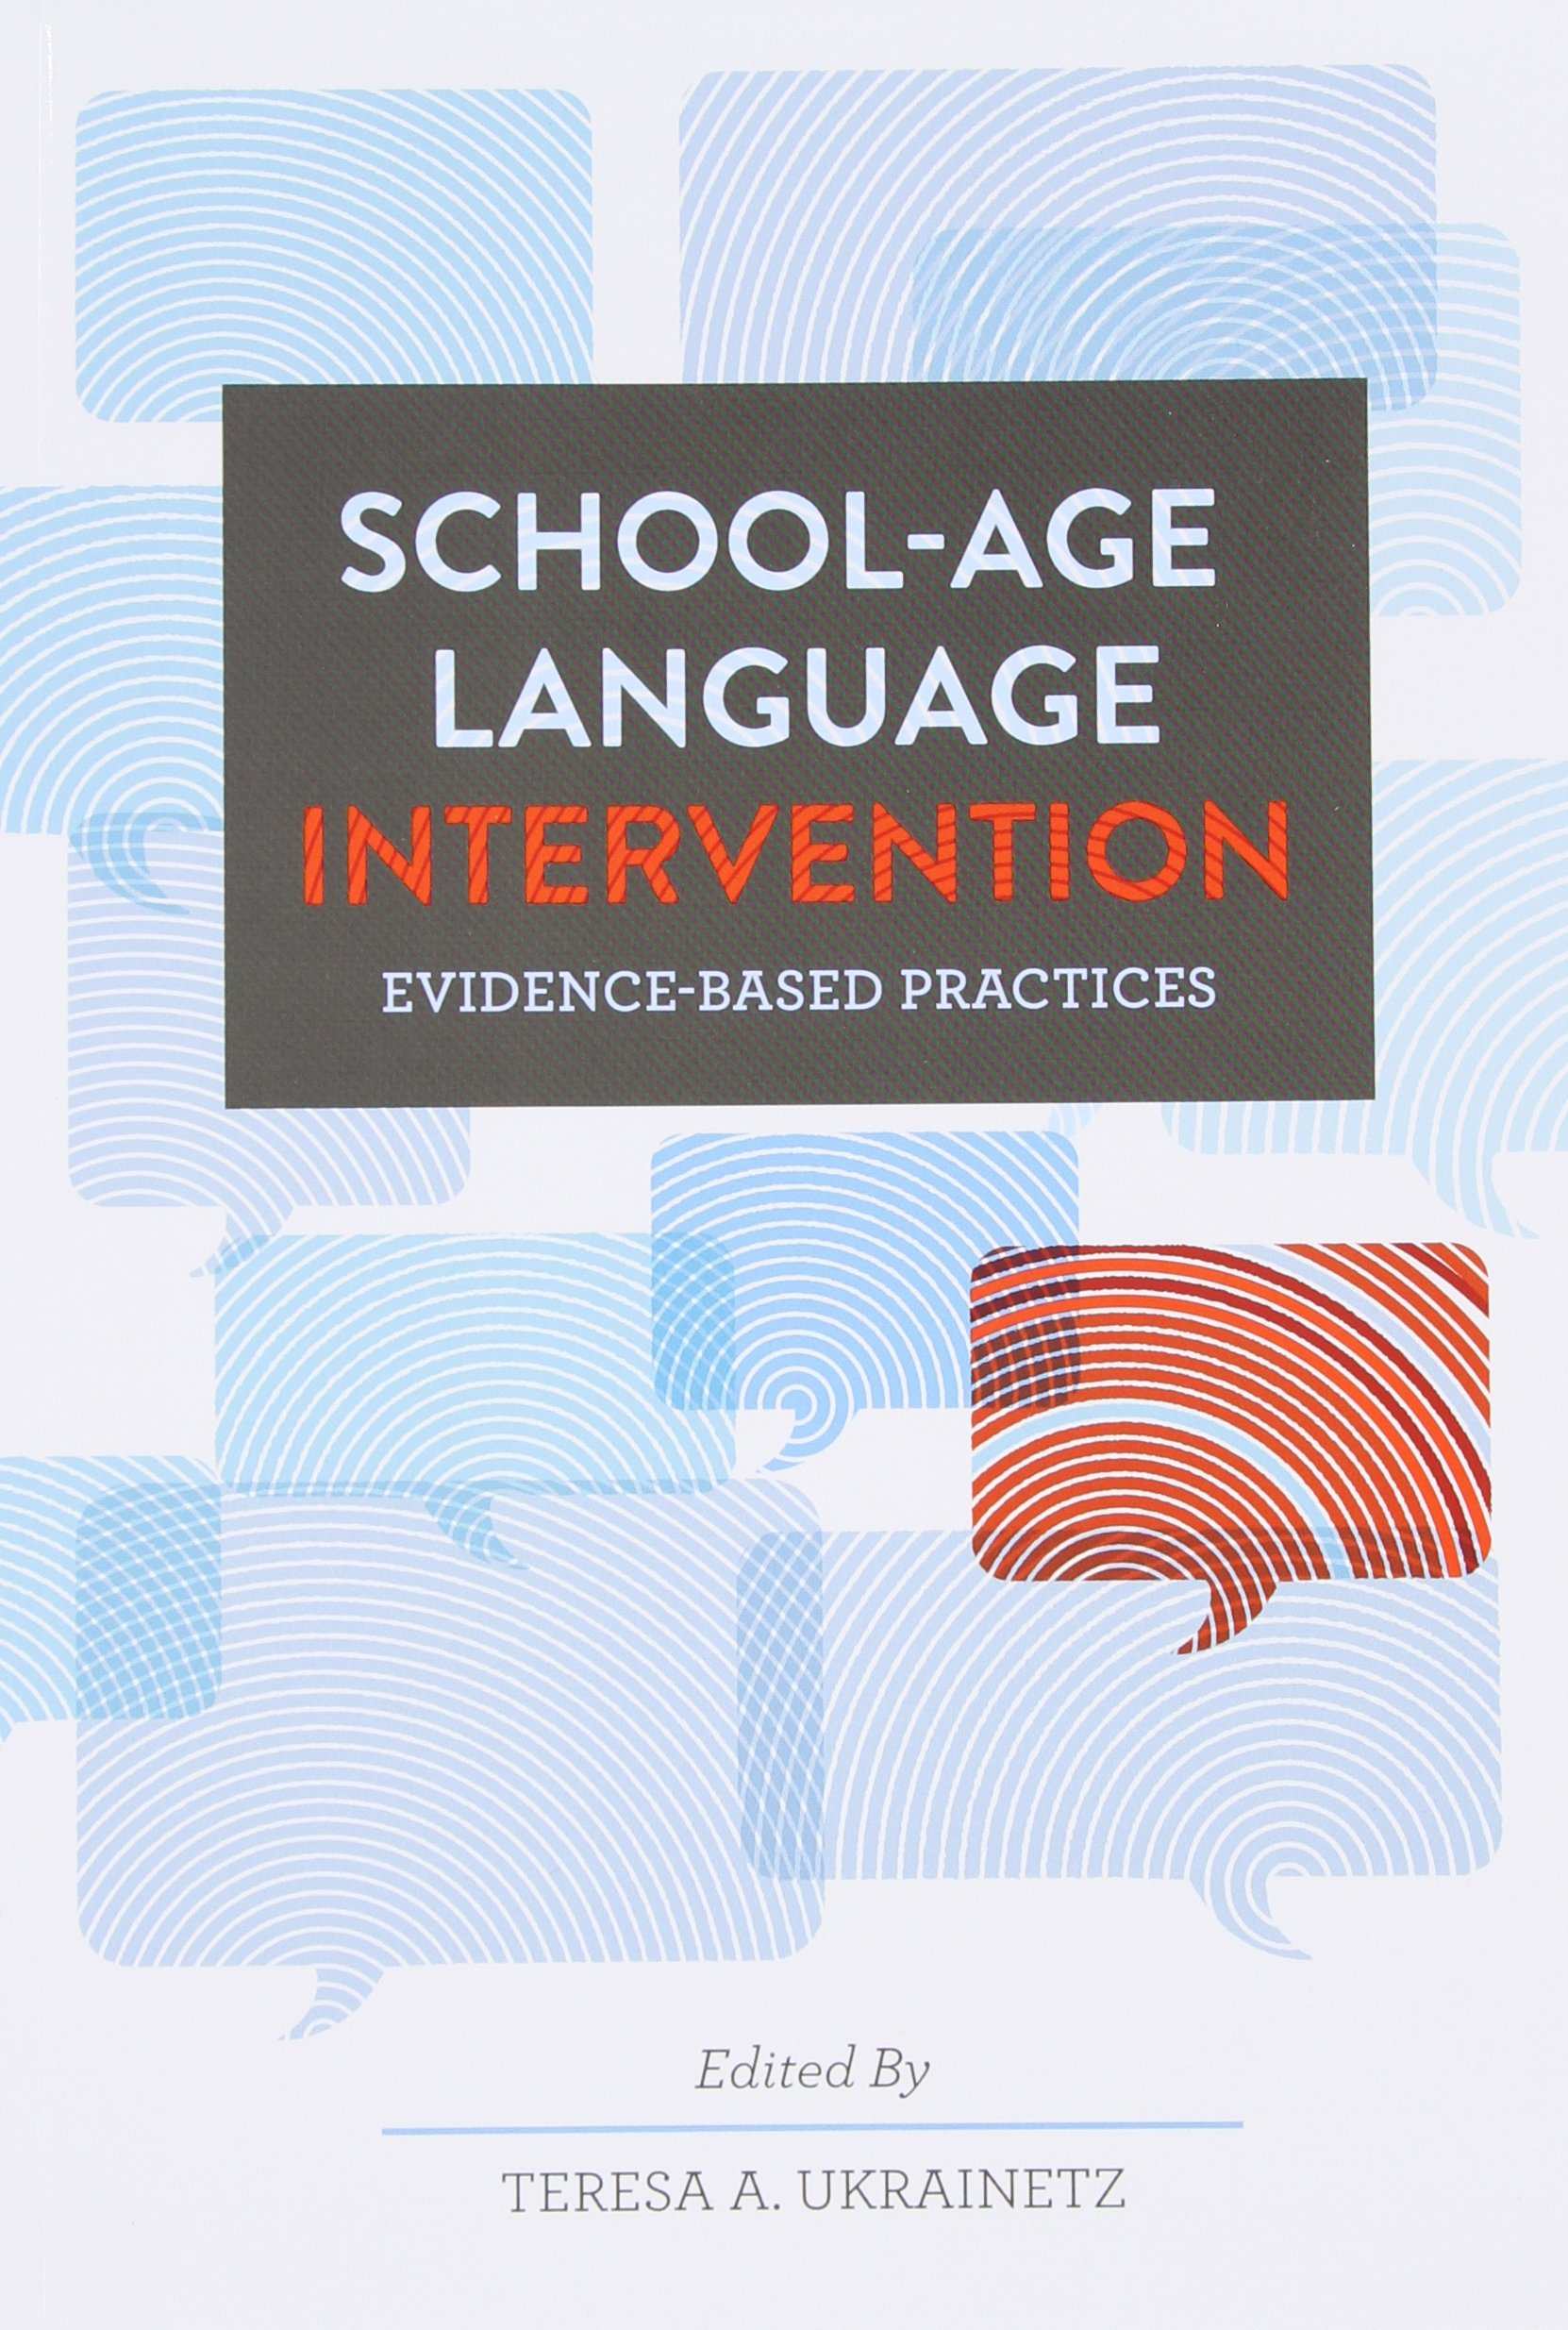 School-age Language Intervention: Evidence-based Practices by Pro Ed